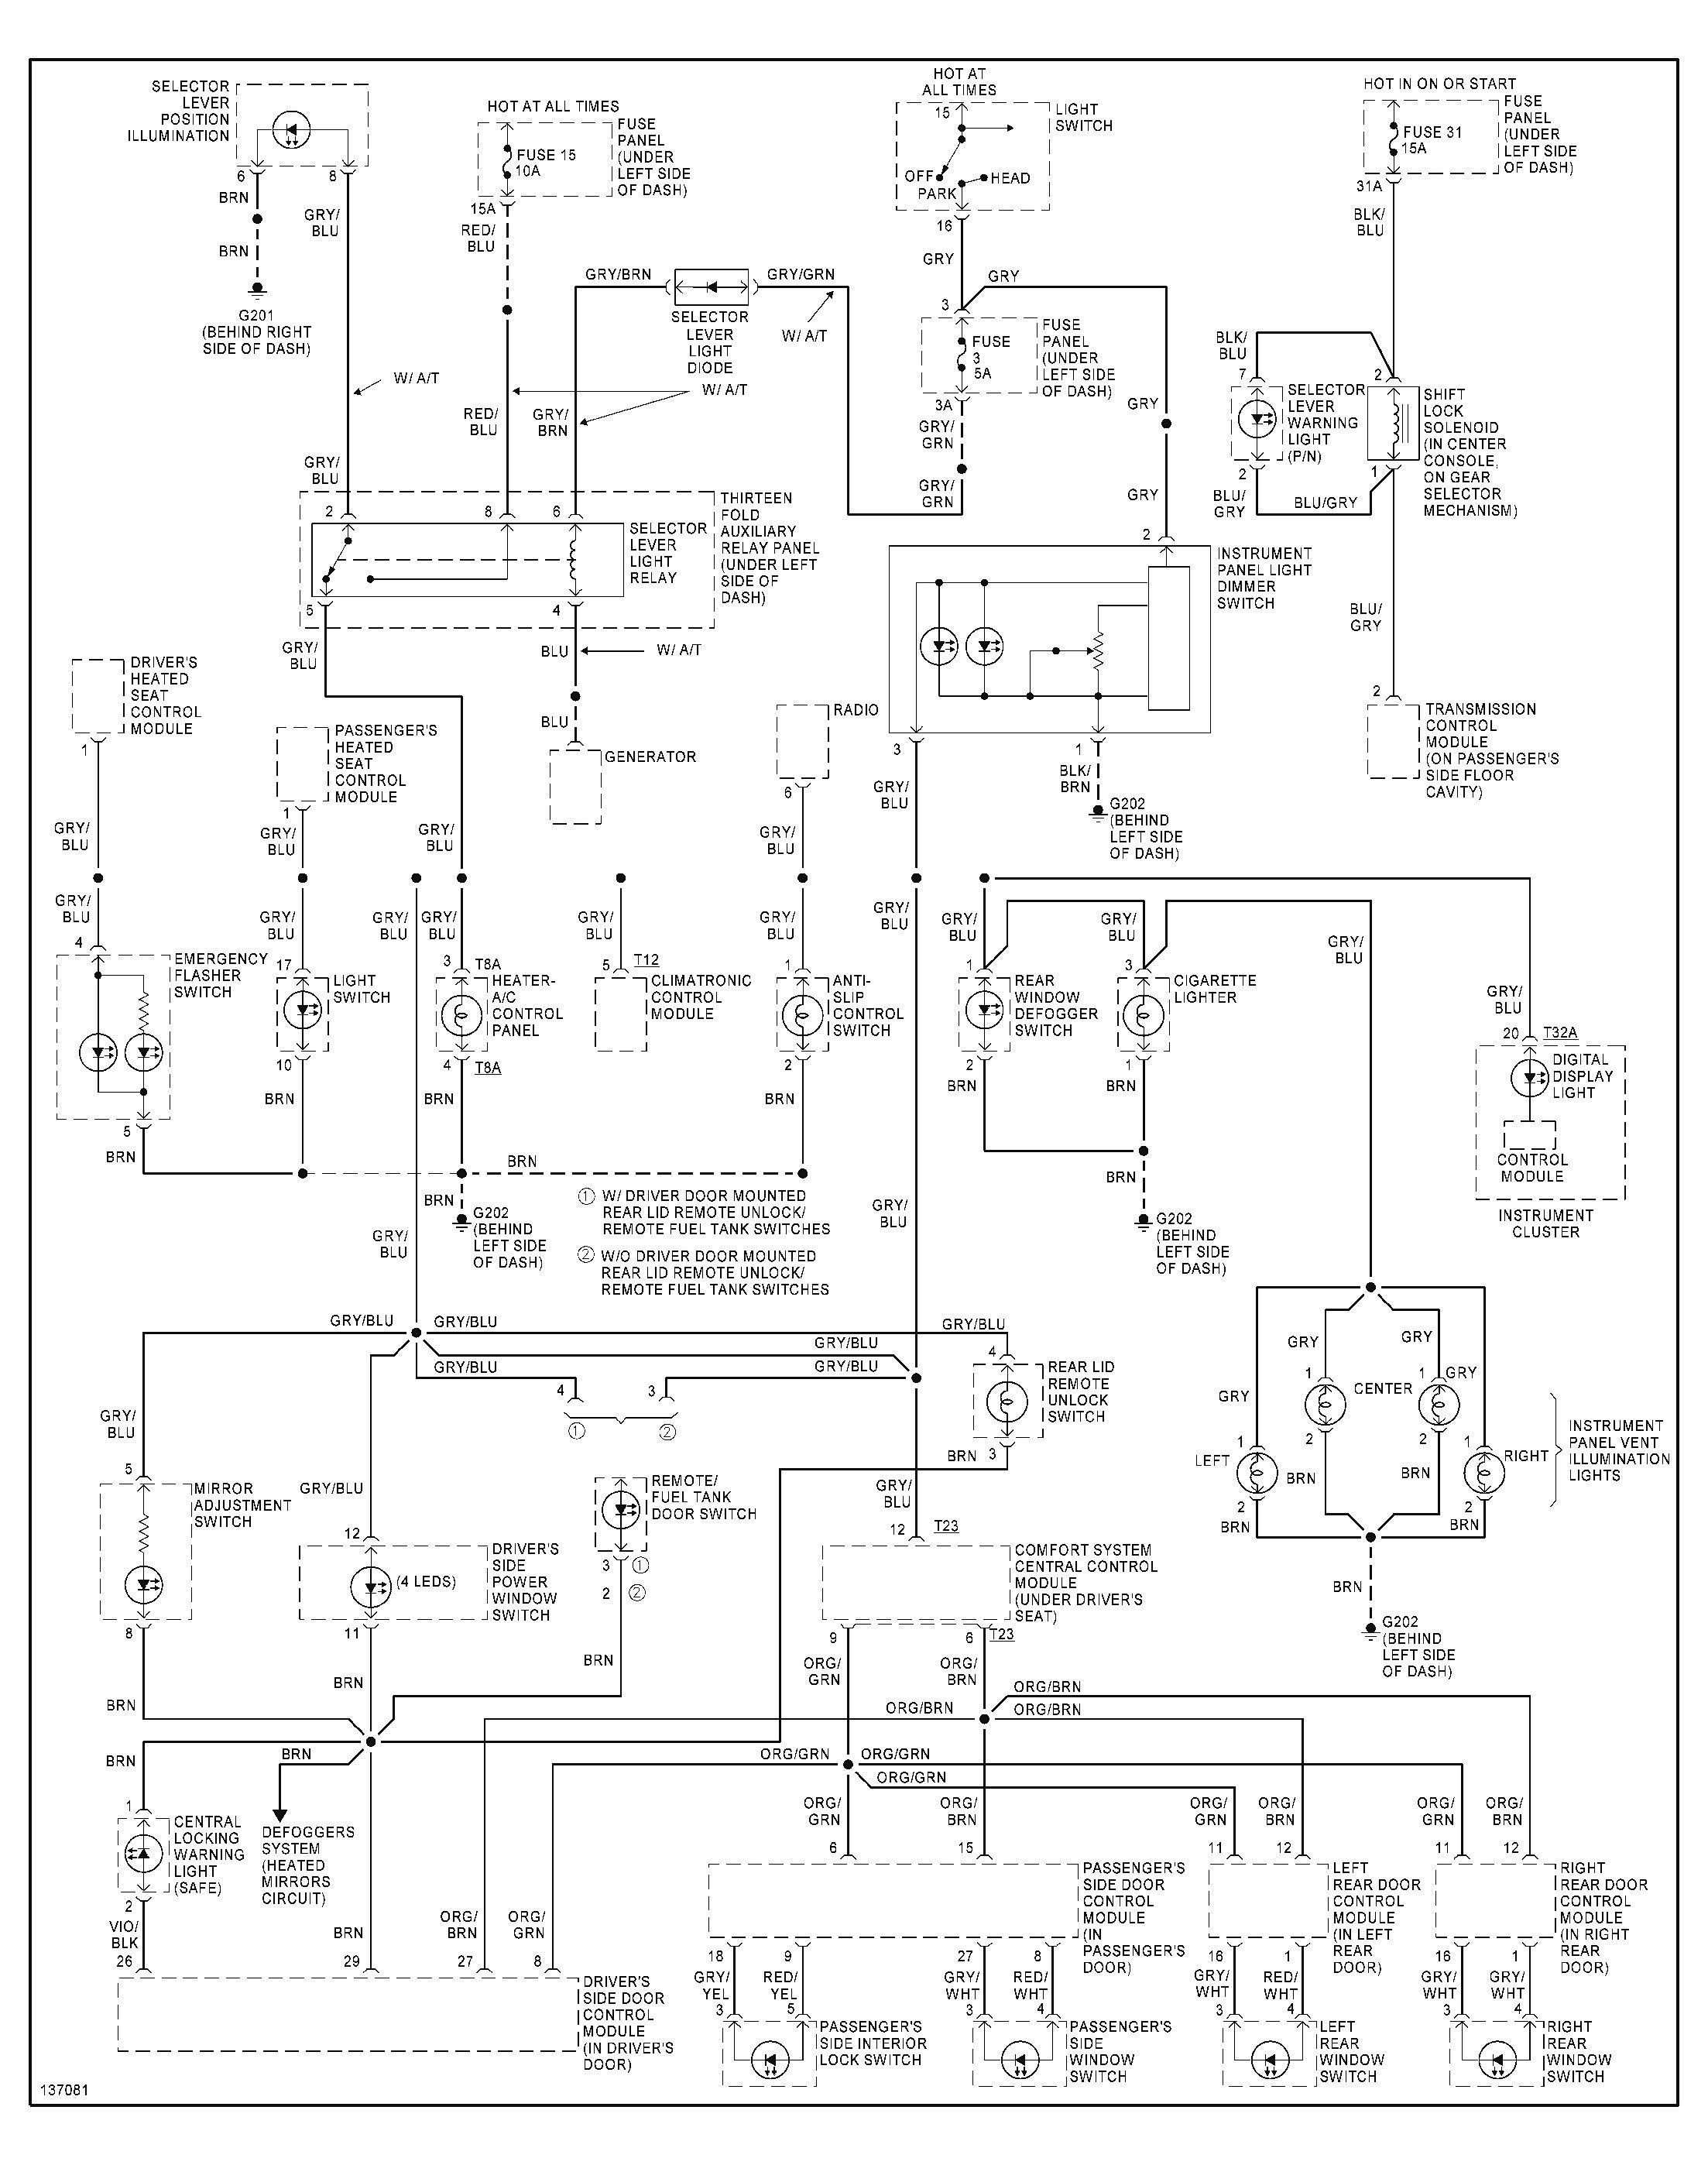 99 Jeep Grand Cherokee Stereo Wiring Diagram from i.pinimg.com